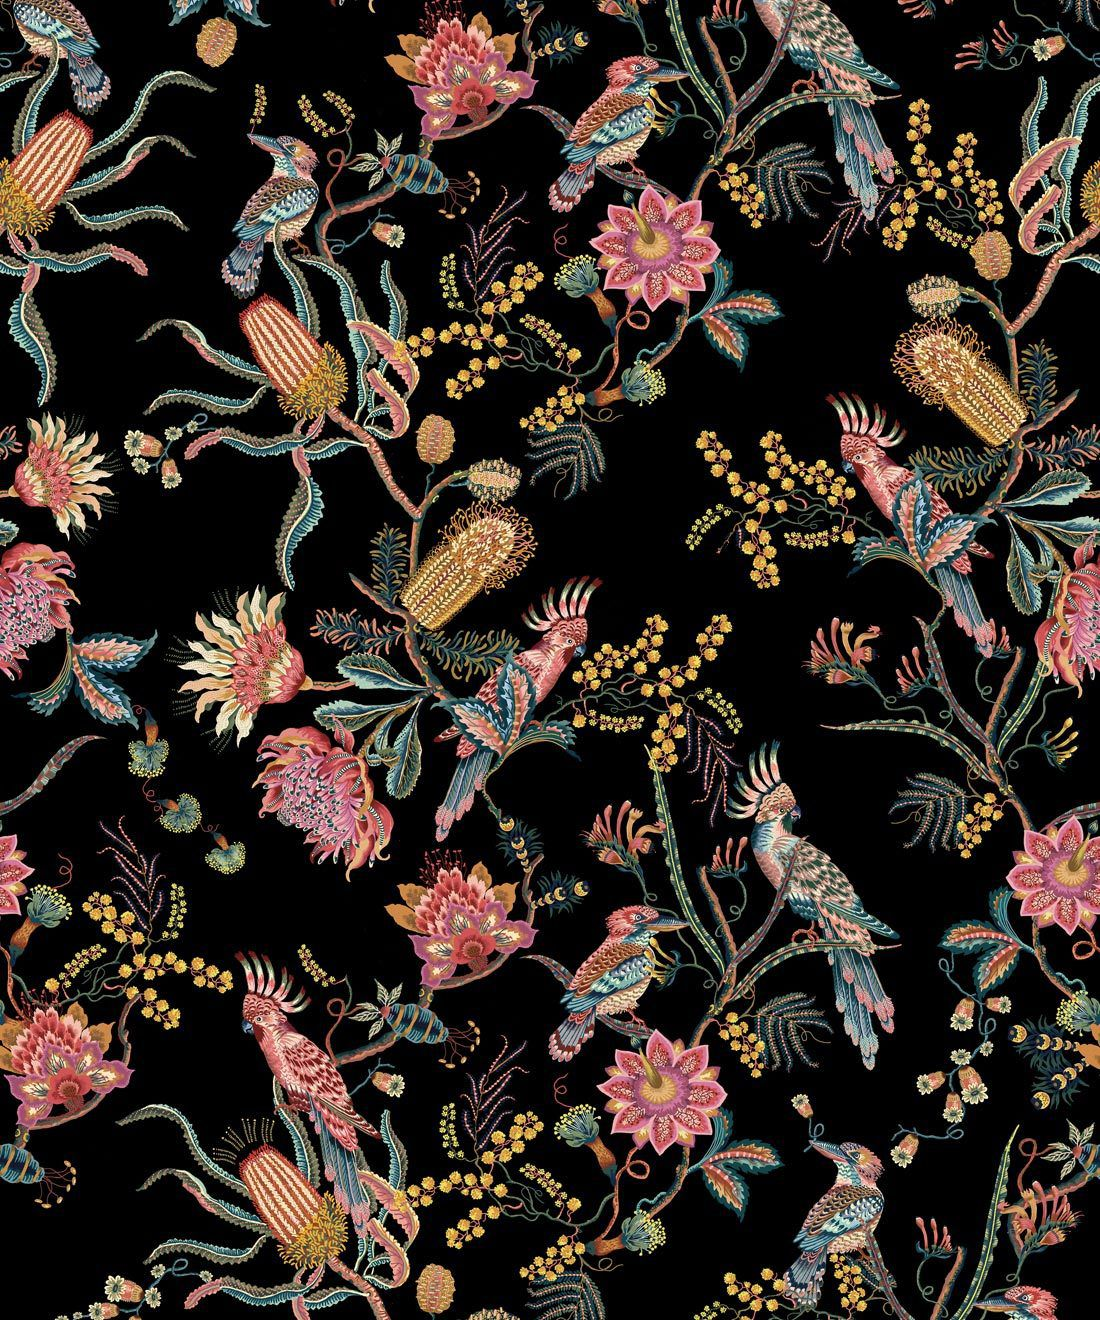 Matilda Wallpaper • Cockatoo, kookaburra • Australian Wallpaper • Milton & King USA • Night Swatch